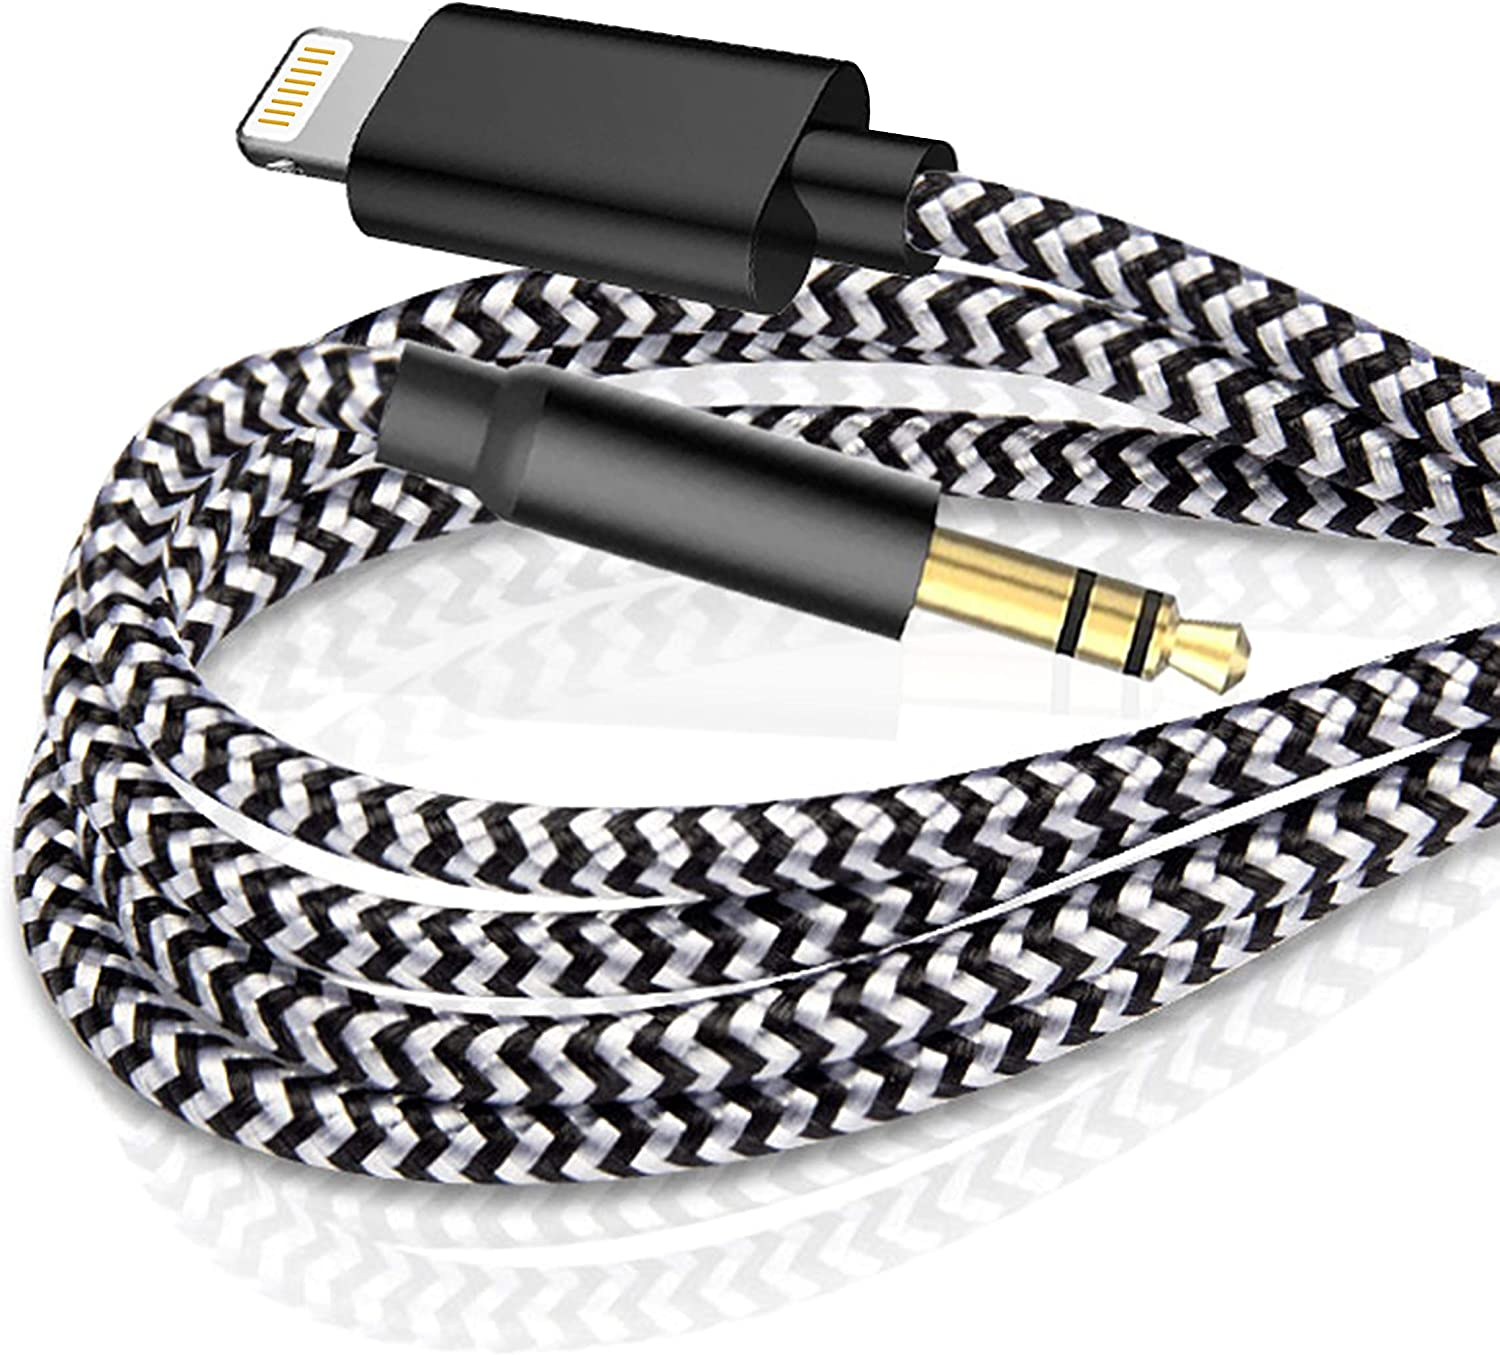 [Apple MFi Certified] iPhone Car Aux Cable, Lightning to 3.5mm AUX Audio Nylon Braided Cable Compatible for iPhone 12/12 Pro/XS/XR/X 11 8 7/iPod to Car/Home Stereo,Support All iOS System (3.3FT,Black)